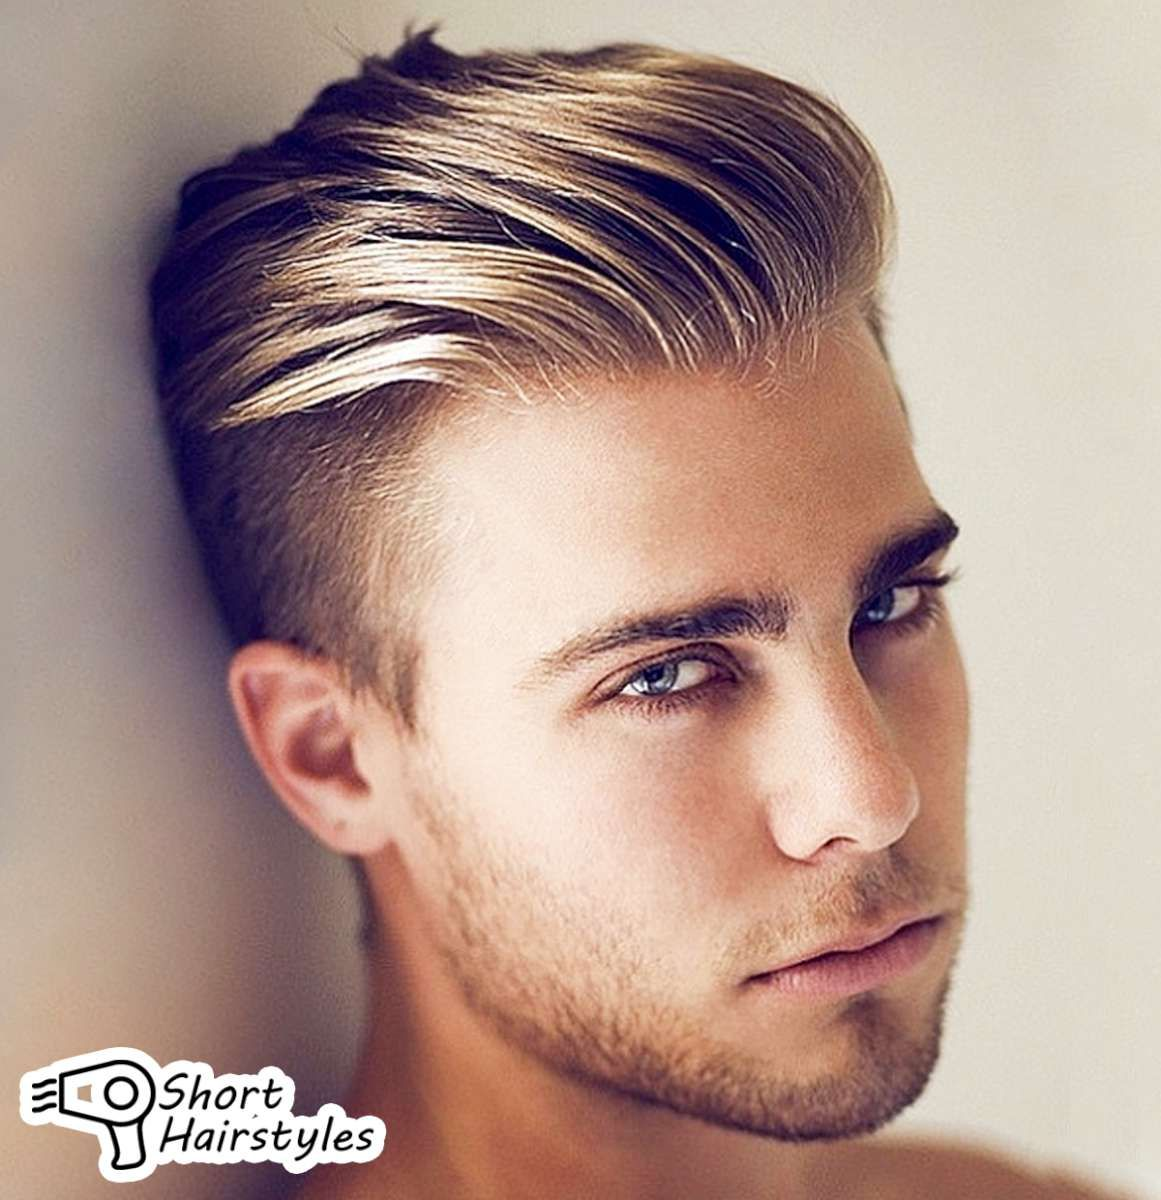 Short Hairstyles For Mens Tumblr 2015